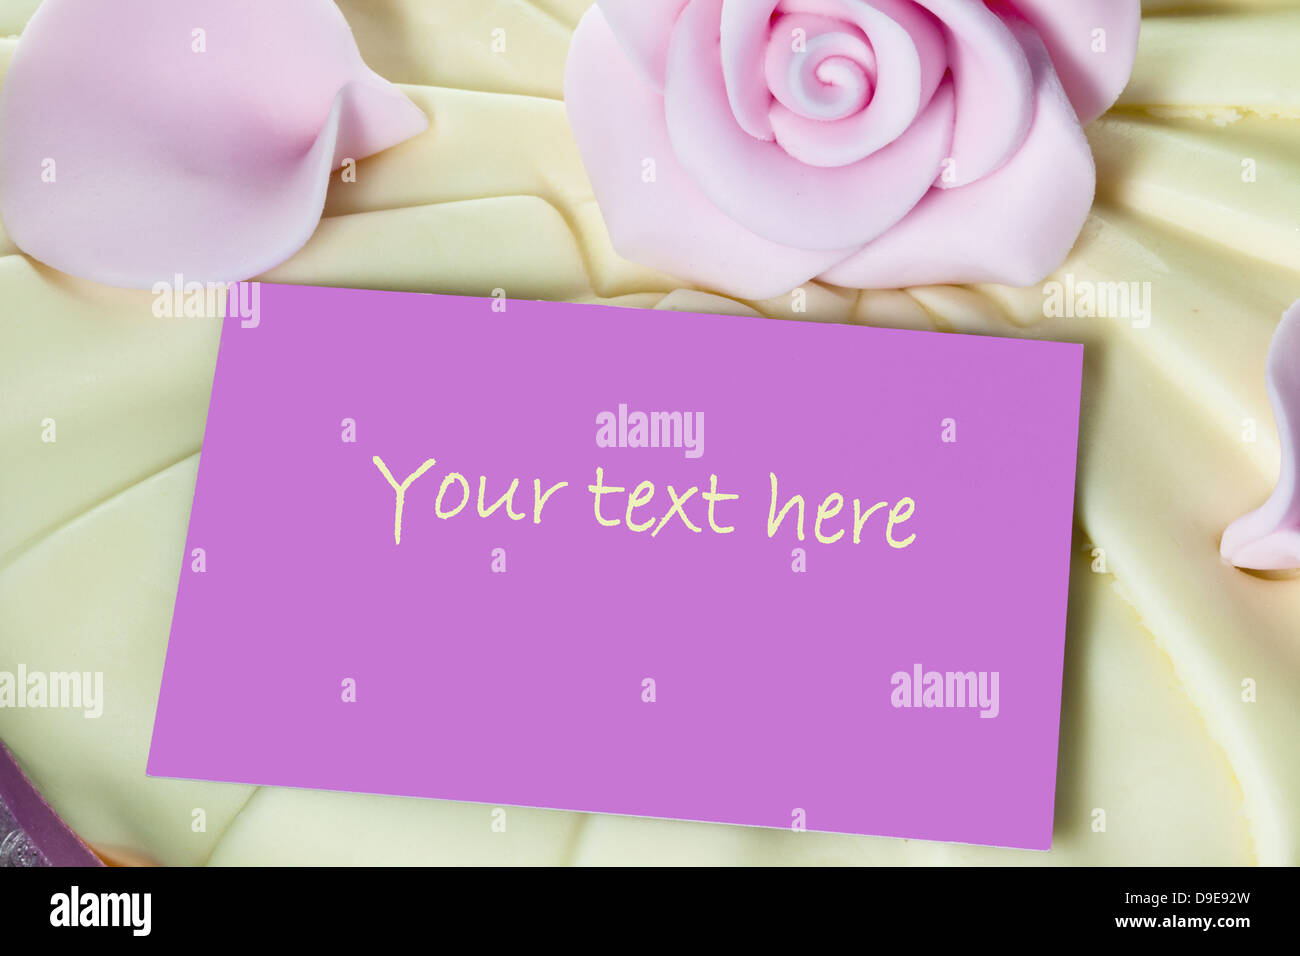 Pink note card close up on top of an iced cake. - Stock Image